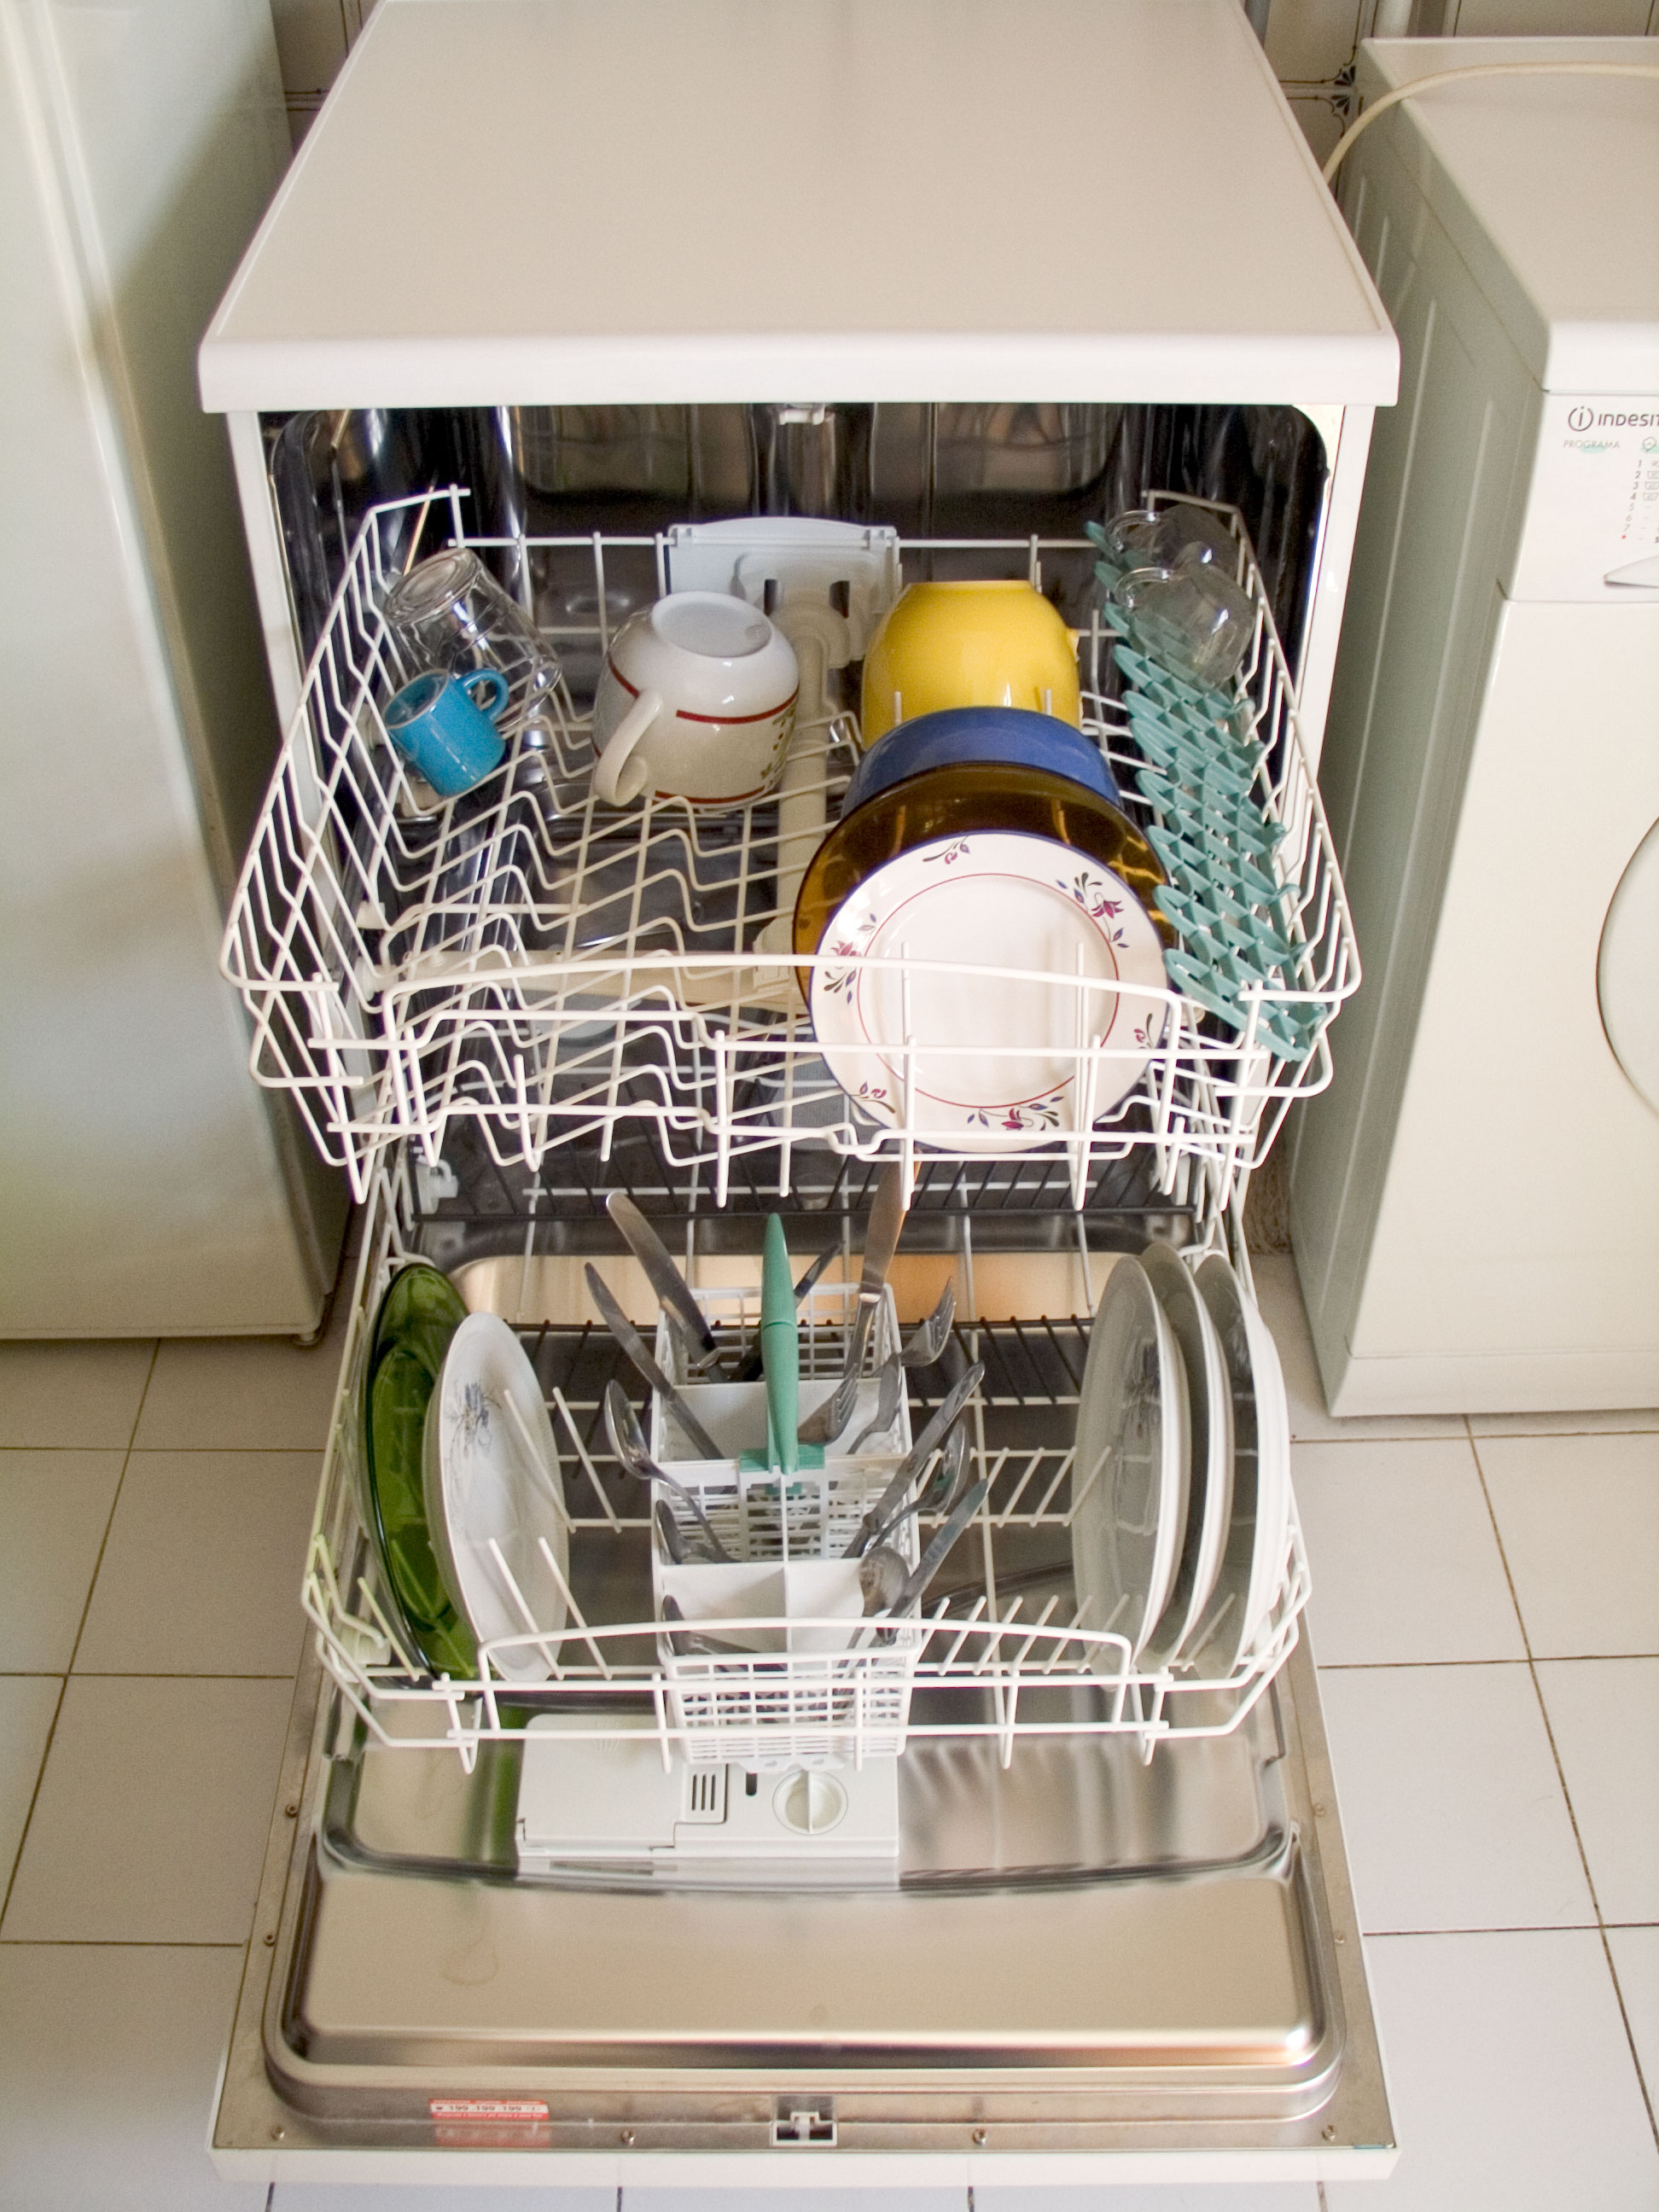 Countertop Glass Washer Dishwasher Wikipedia